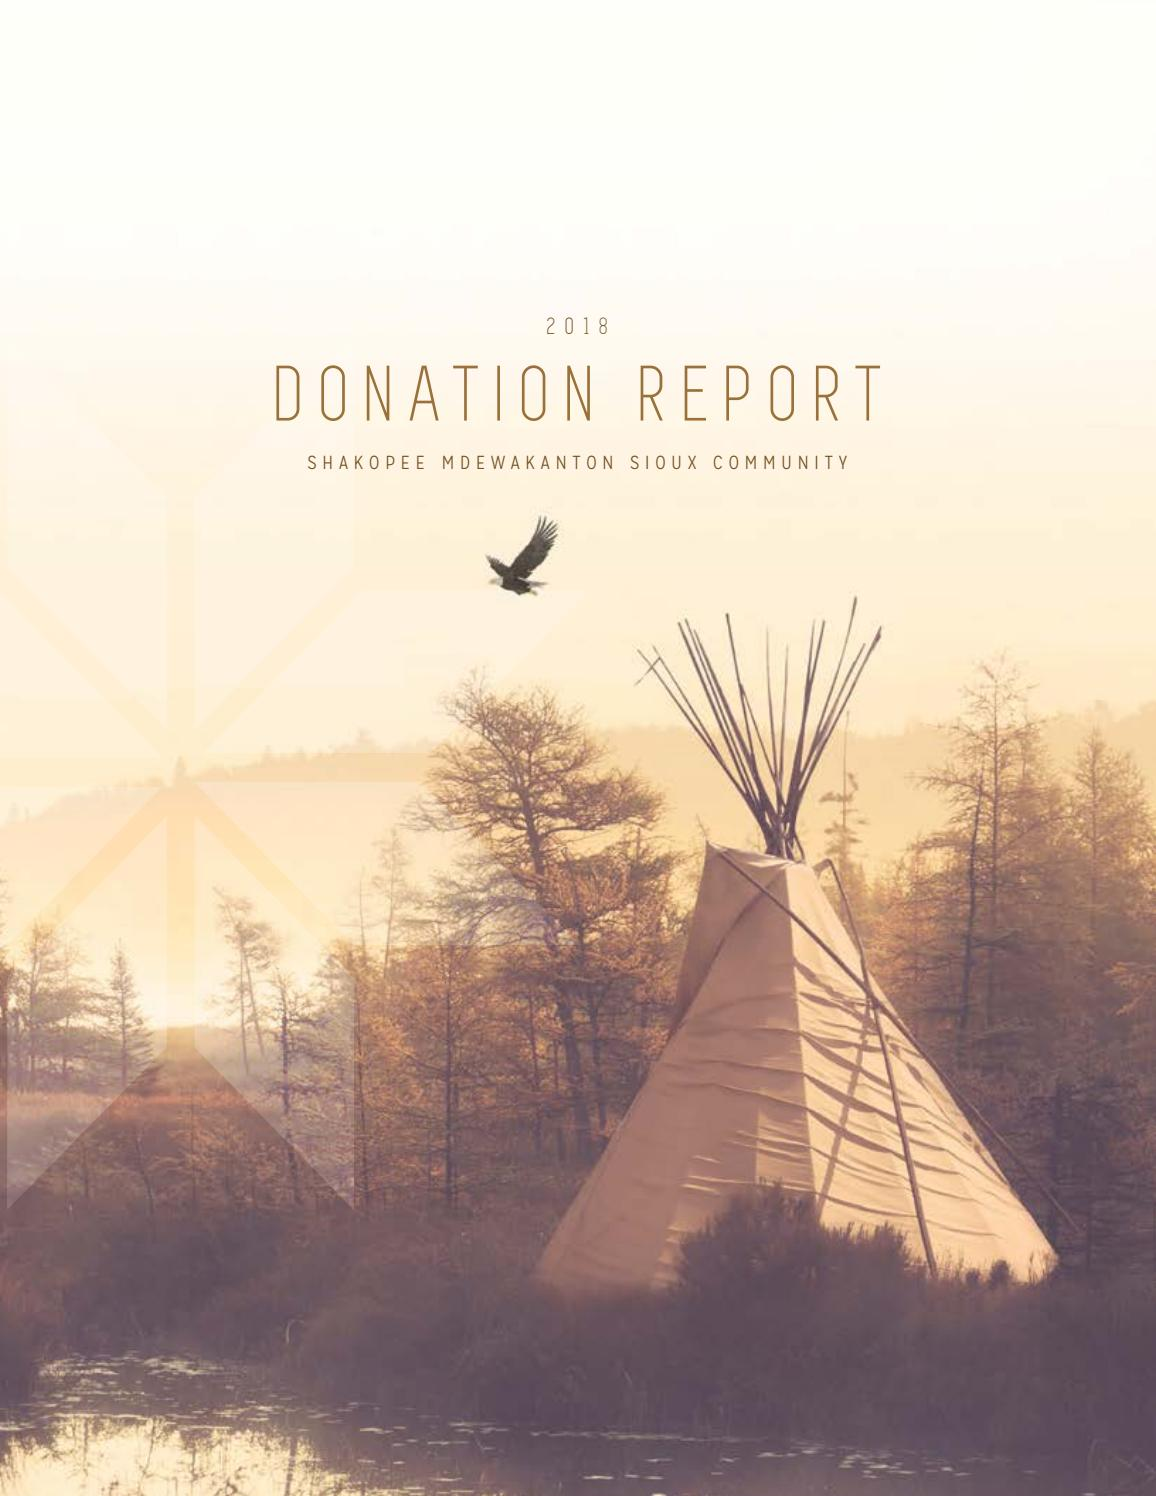 2018 SMSC Donation Report by Shakopee Mdewakanton Sioux